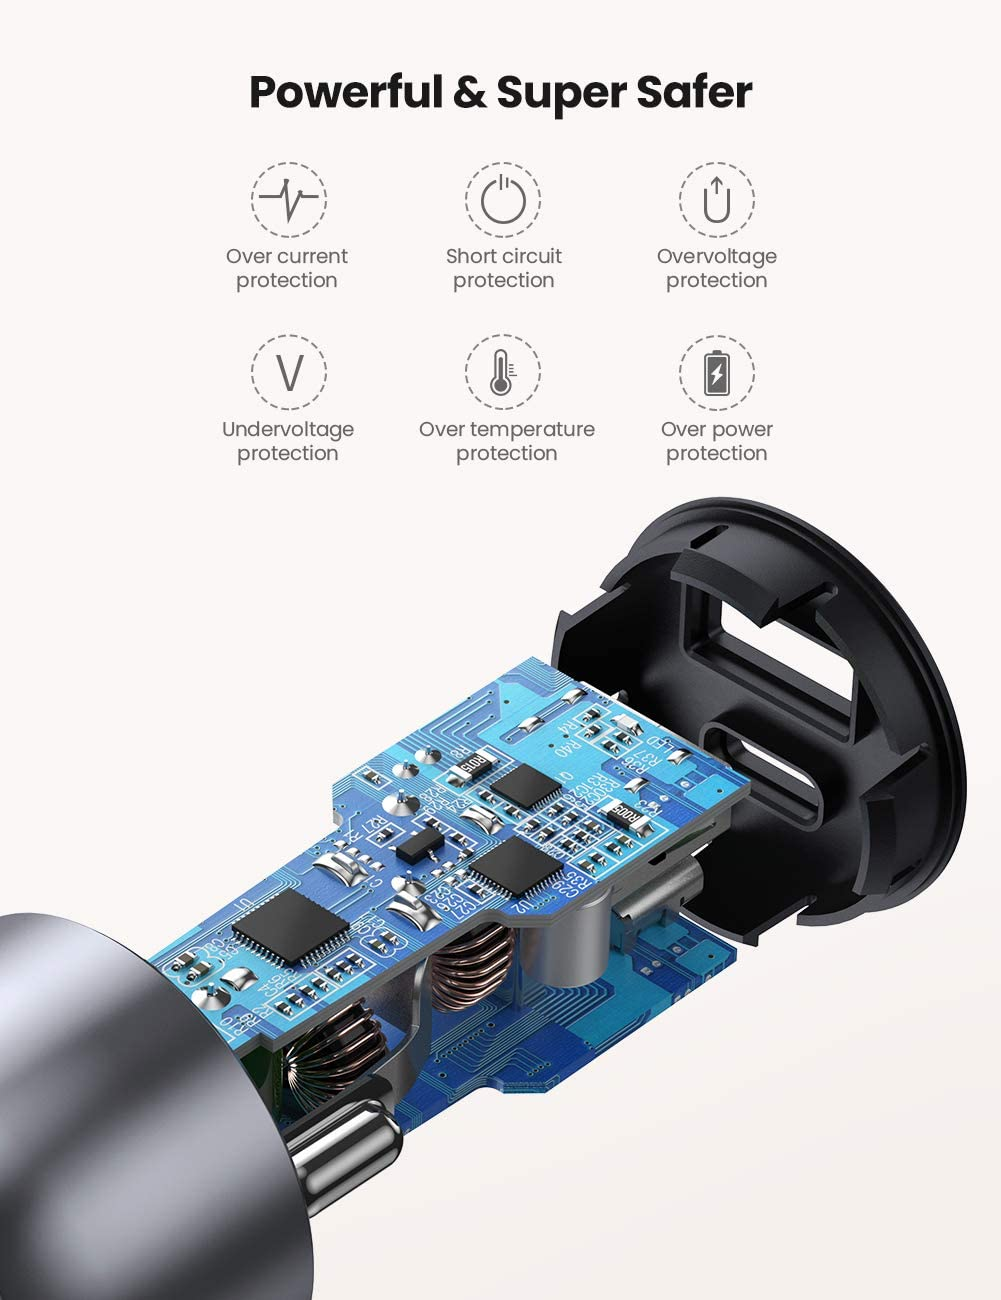 UGREEN USB C Car Charger Mini 36w PD and QC 3.0 Car Adapter 2 Port Simultaneously Fast Charge for iPhone 11 iPad Pro Samsung S10 Huawei P30 Redmi Note 8 Moto G7 GPS Tomtom Satnav etc Metal